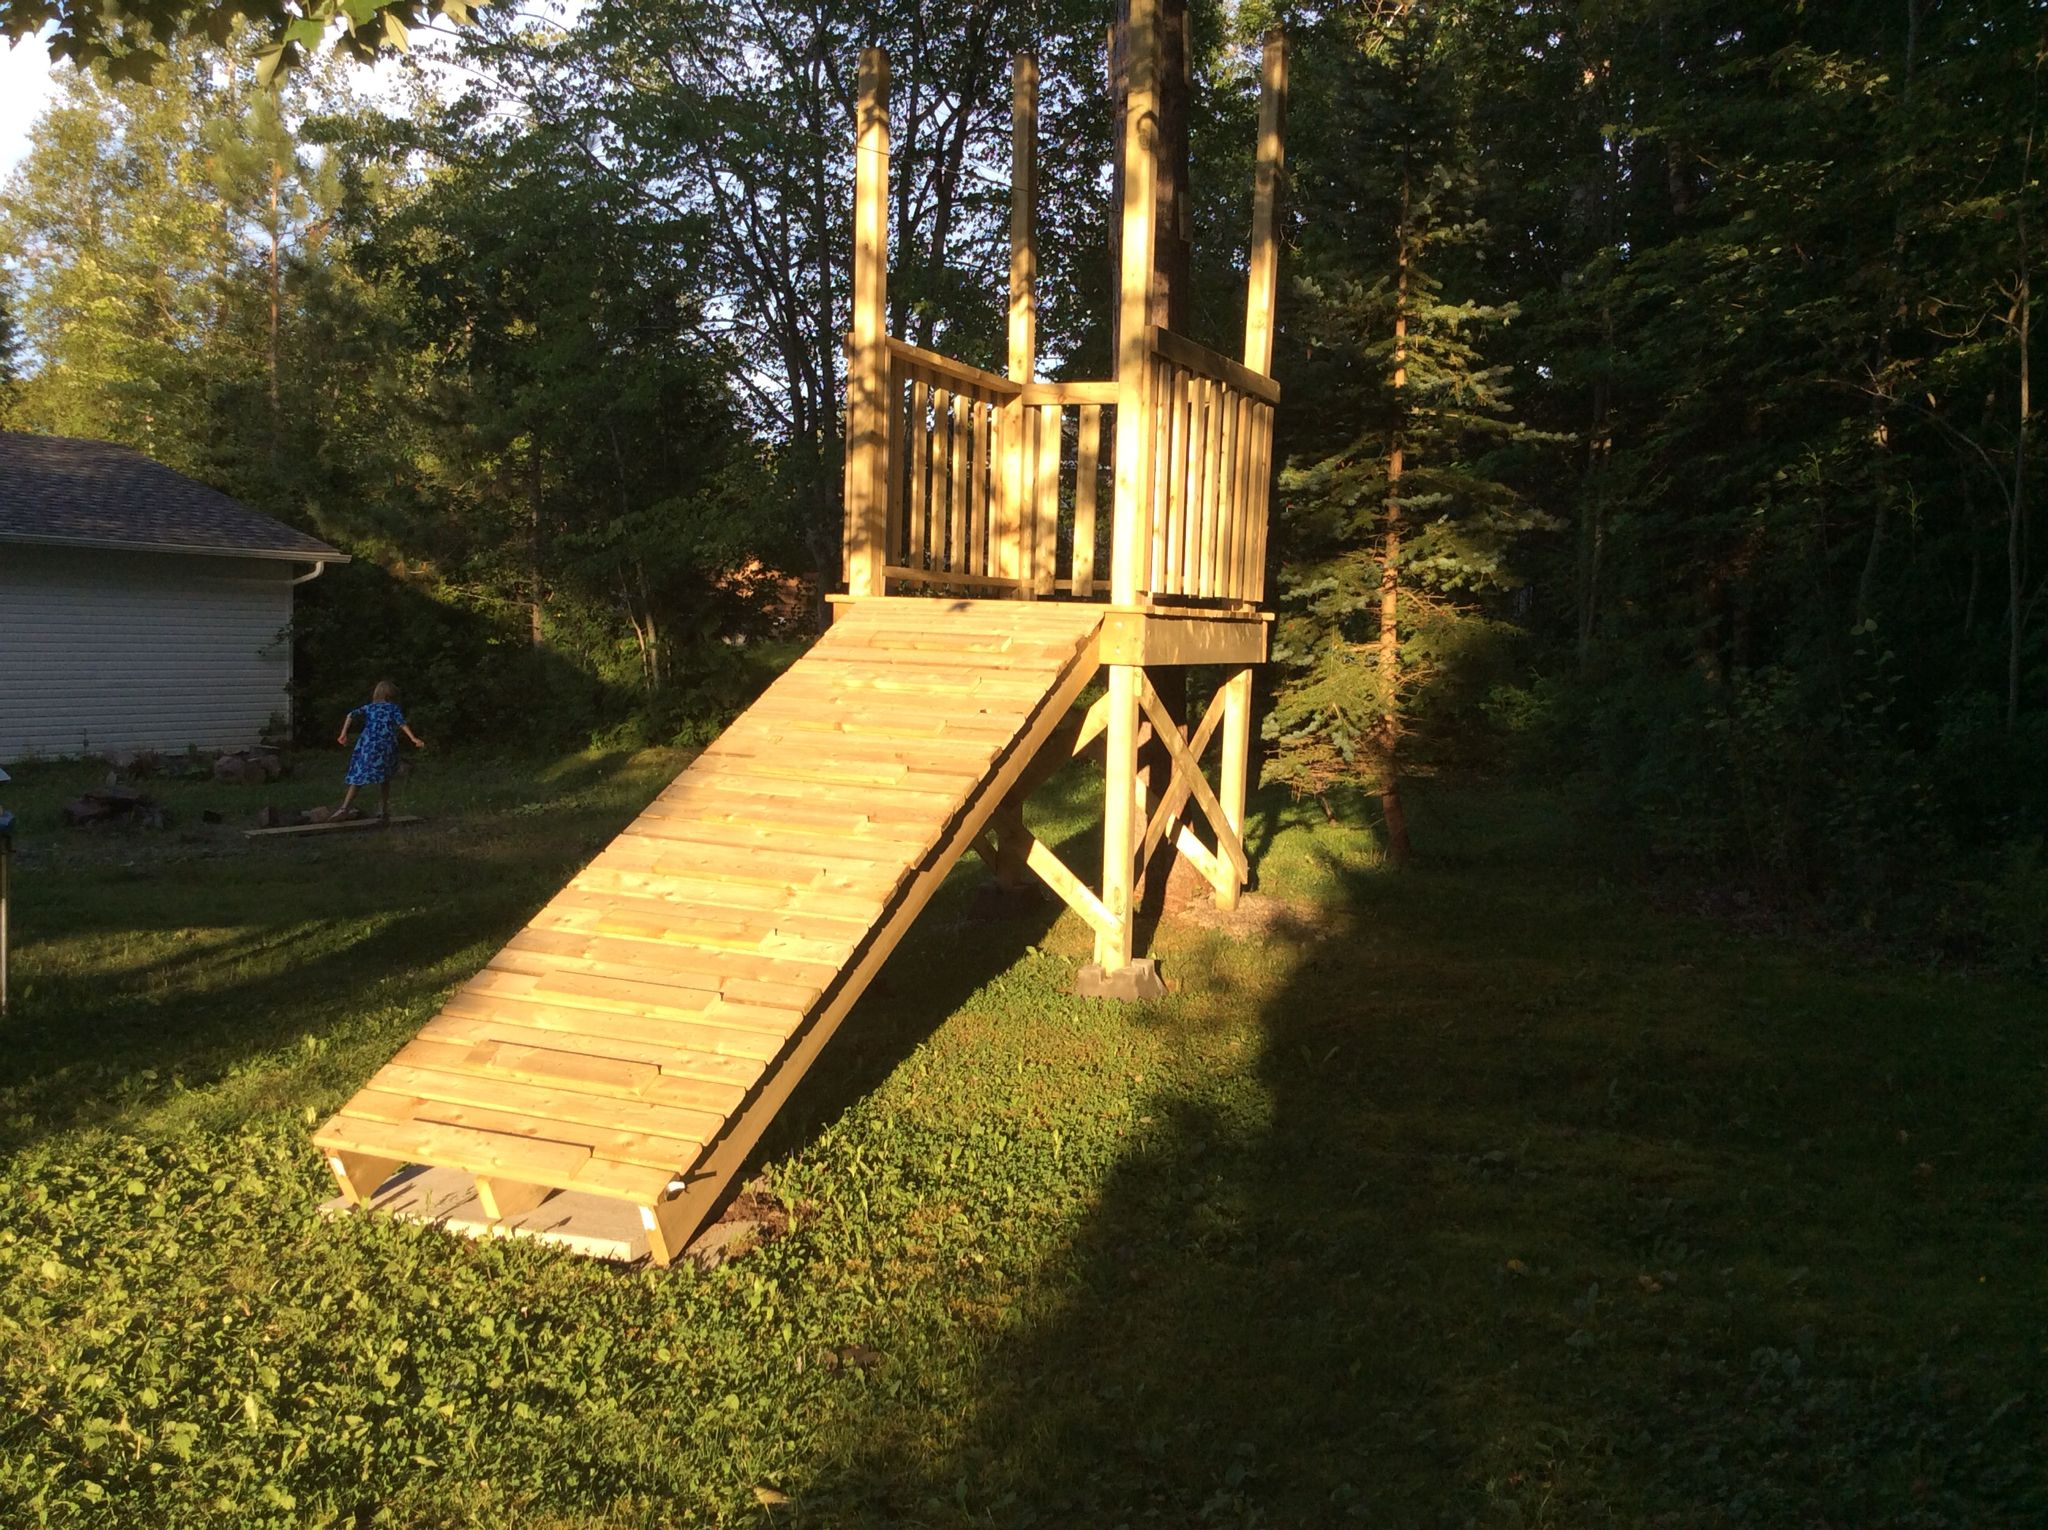 Zip line platform | Backyard play, Backyard fun, Backyard ...